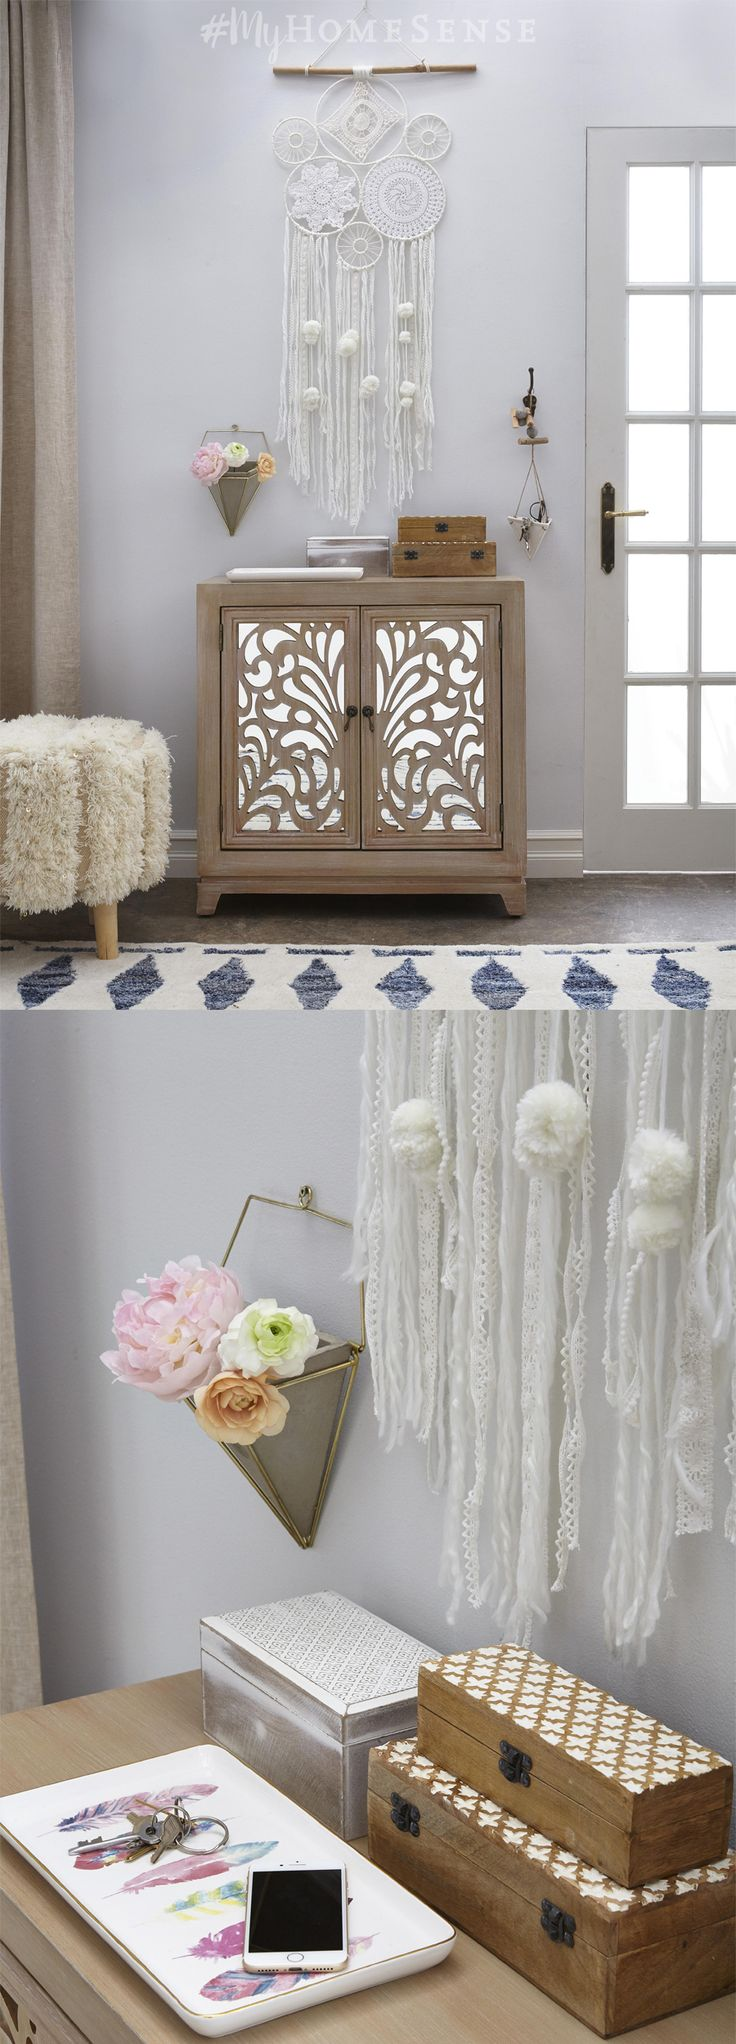 Details, details! Special touches, like a carved wood cabinet with mirror details, bring personality to any space. Pile on the personality with wall hangings, ornate storage boxes and a few faux florals to complete the look. Visit HomeSense today for endless possibilities to add personal style to your space.